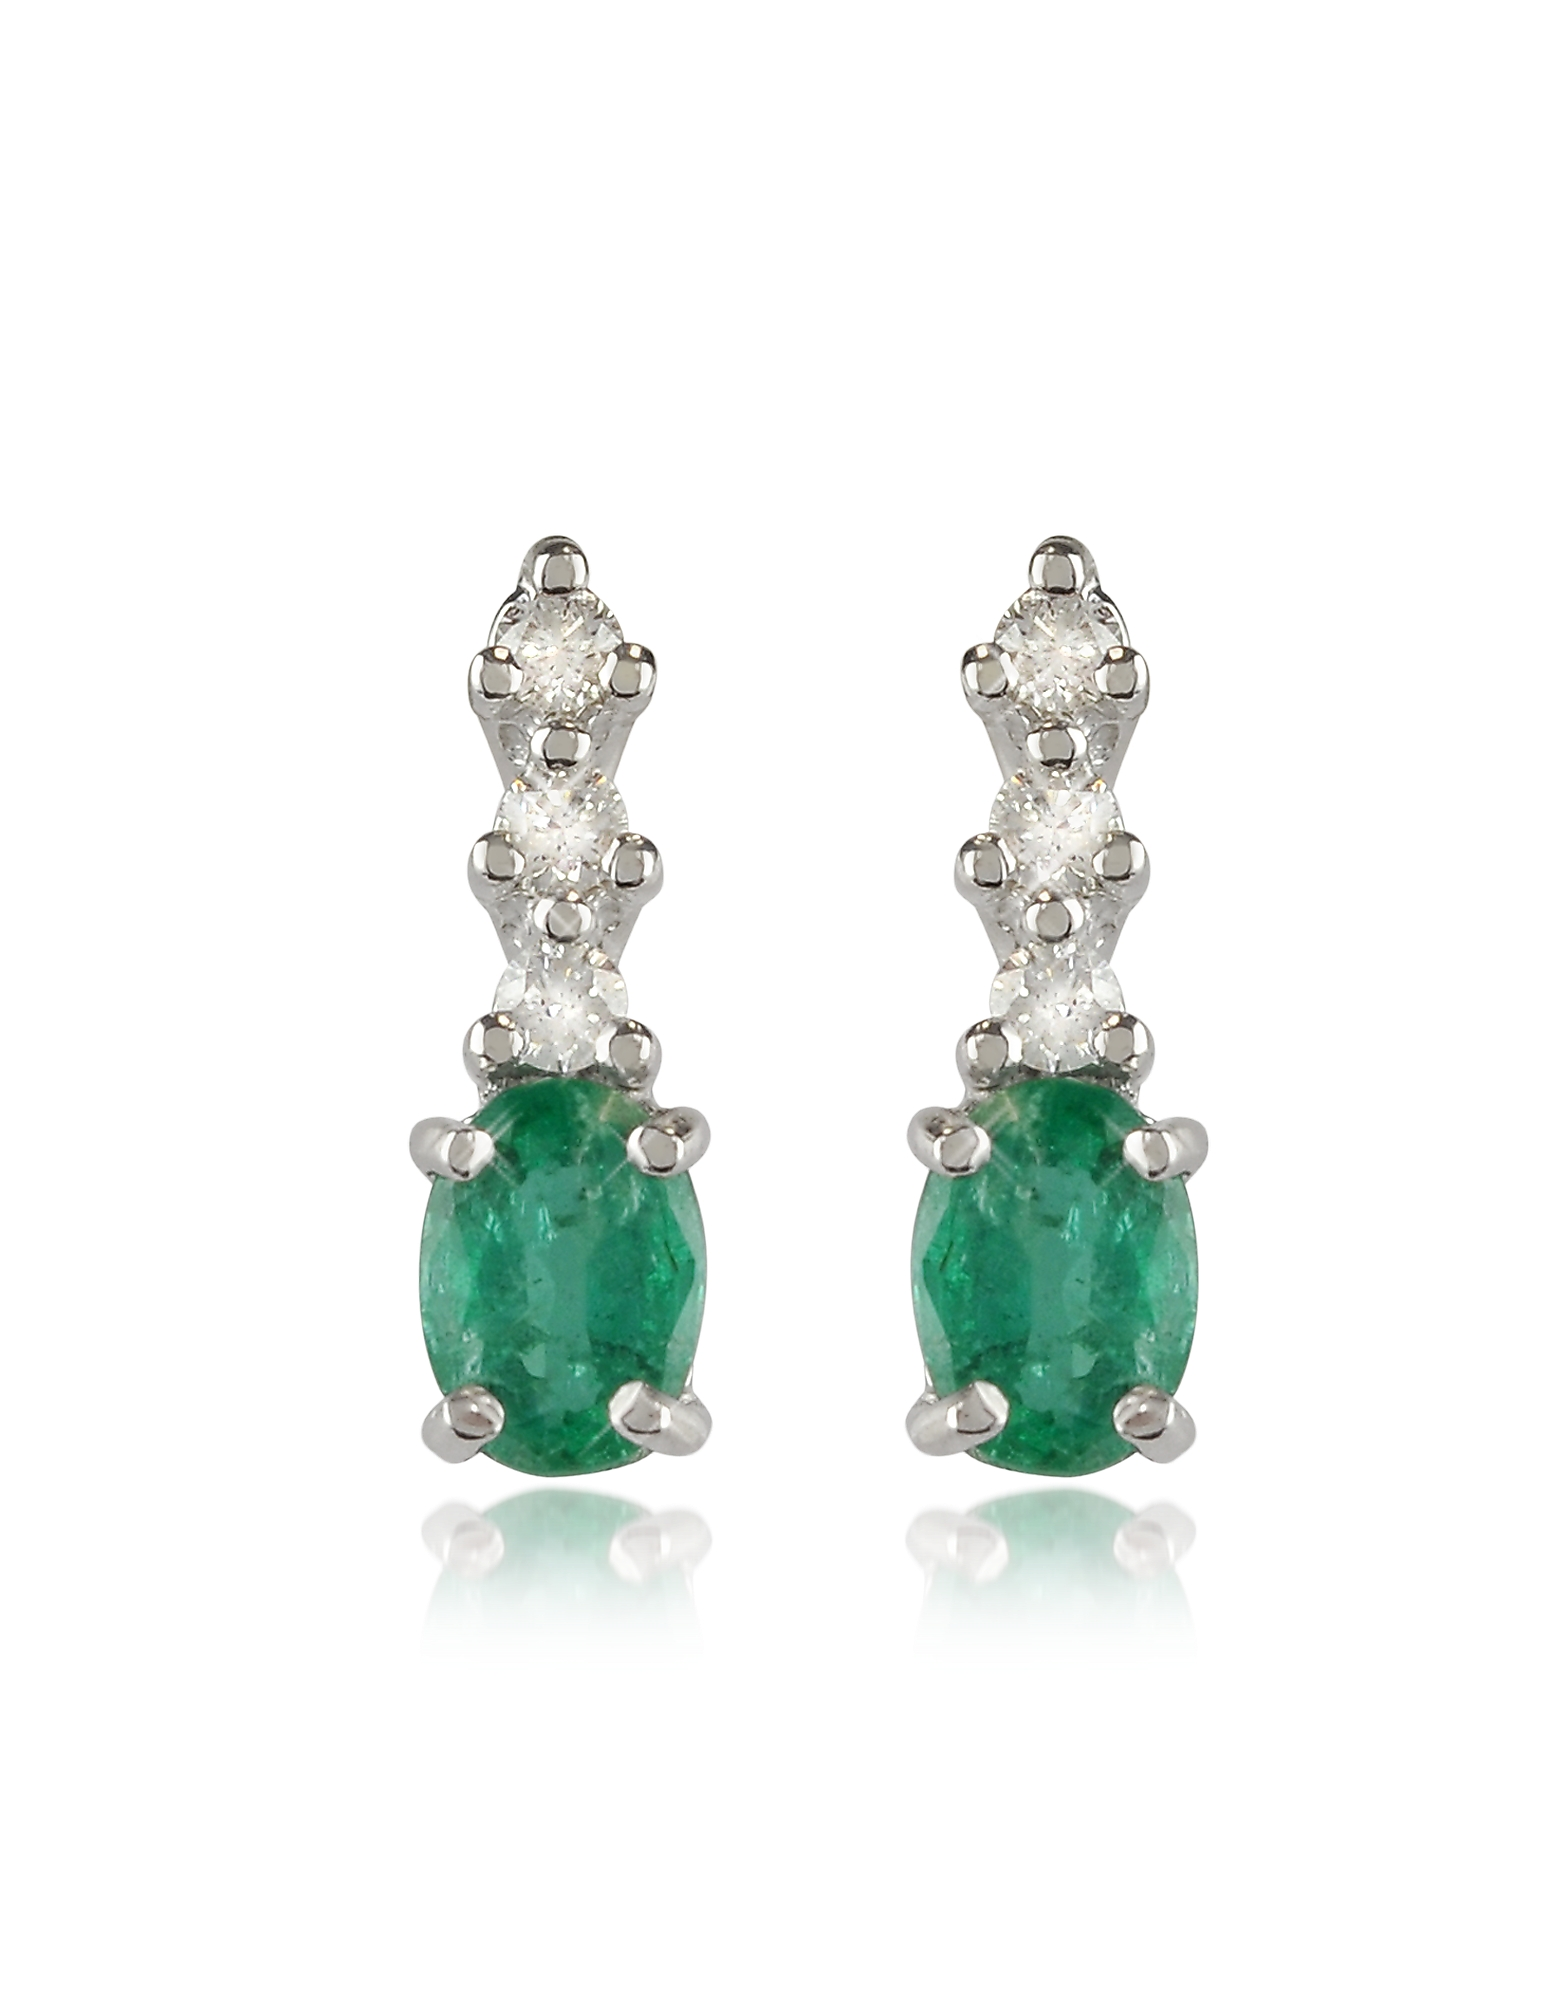 Incanto Royale Designer Earrings, Emerald and Diamond 18K Gold Drop Earrings